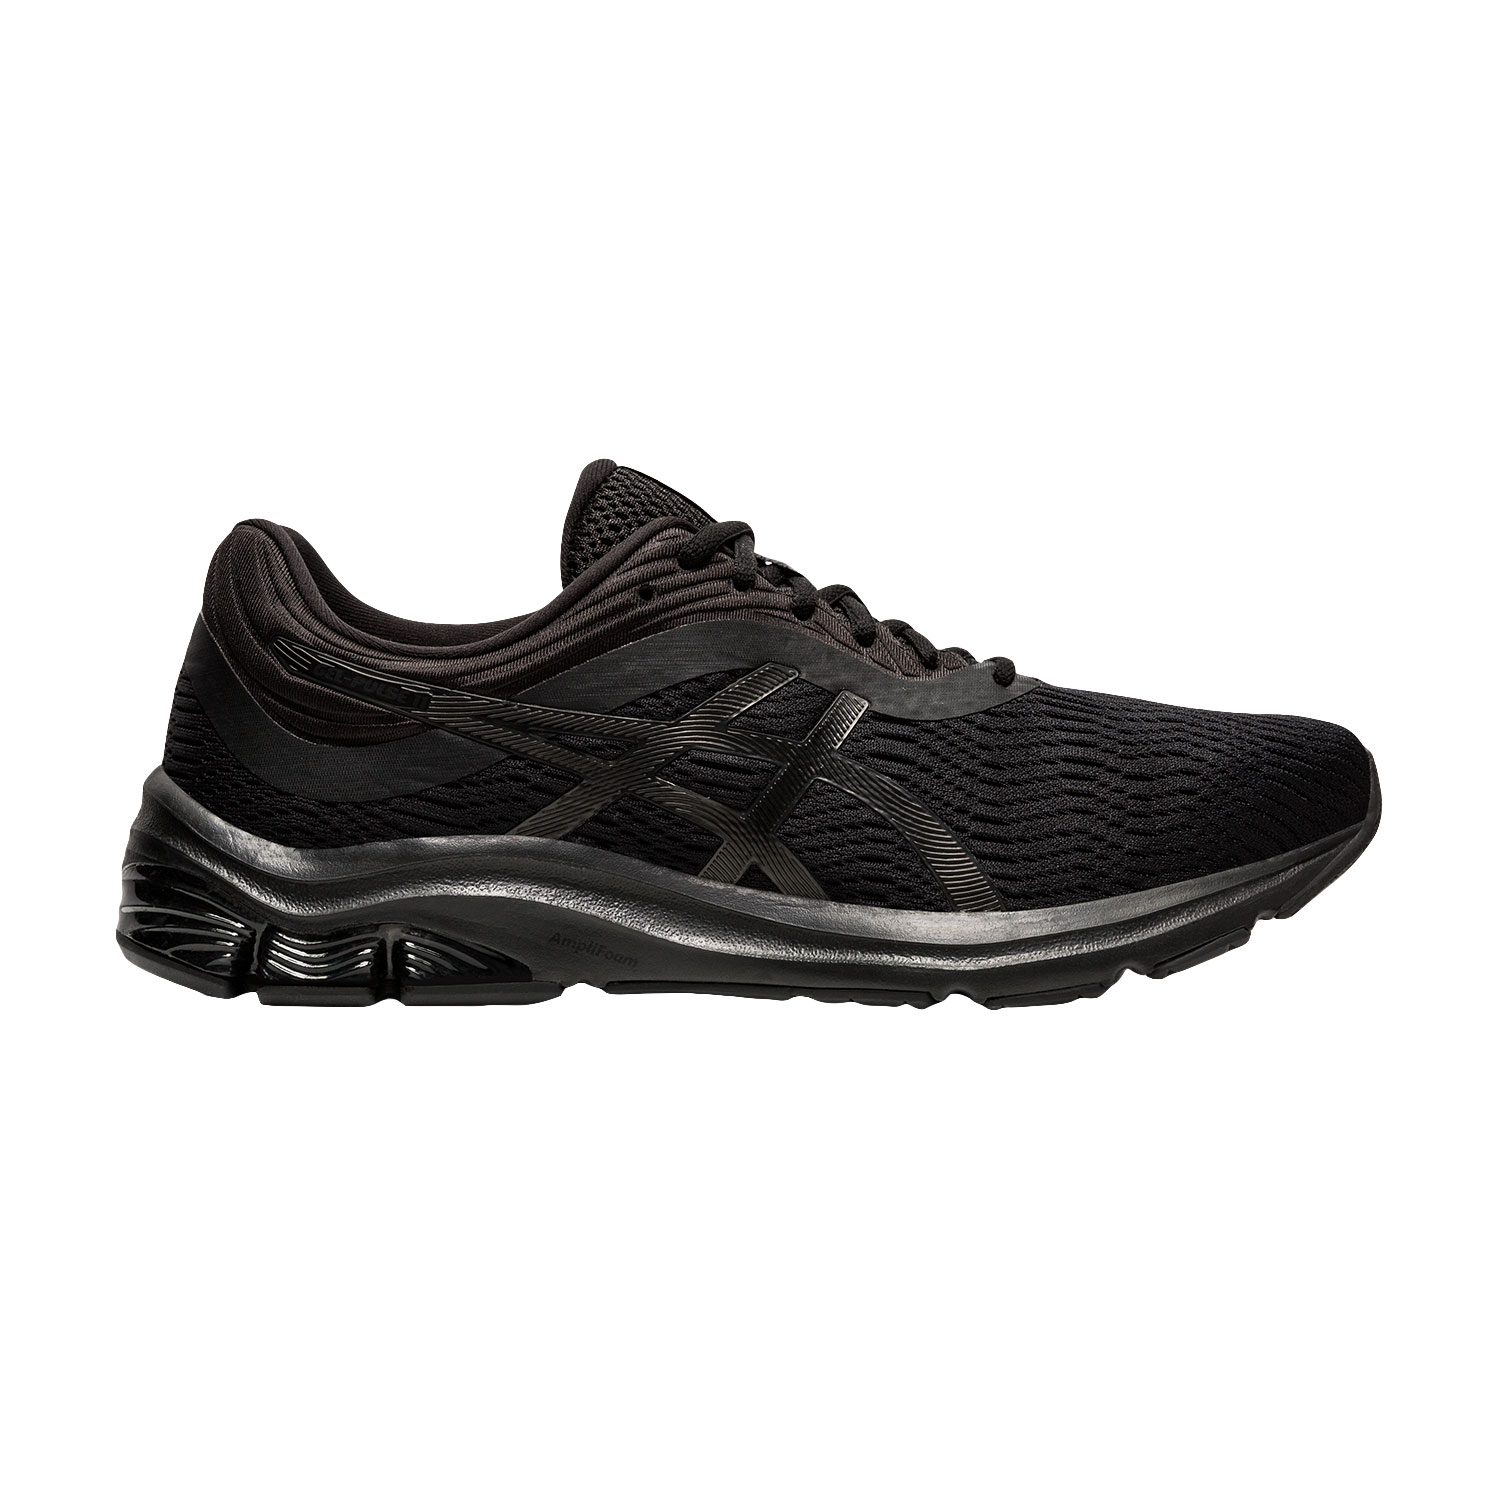 Asics Gel Pulse 11 - Black/Graphite Grey